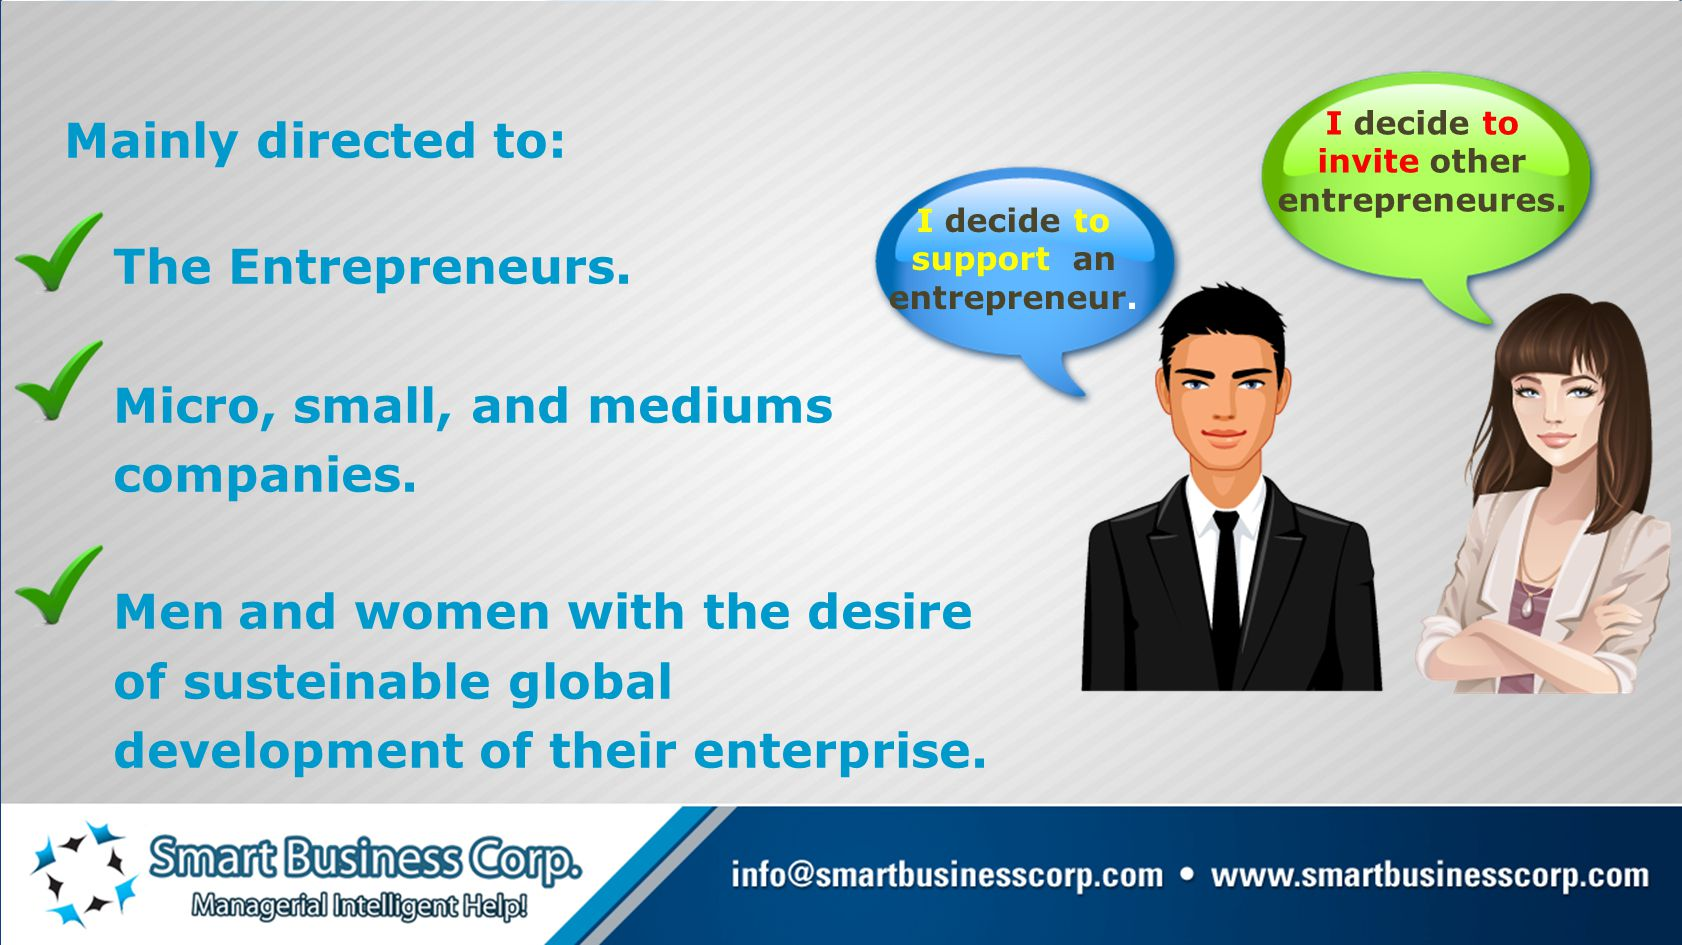 Mainly directed to: The Entrepreneurs.Micro, small, and mediums companies.